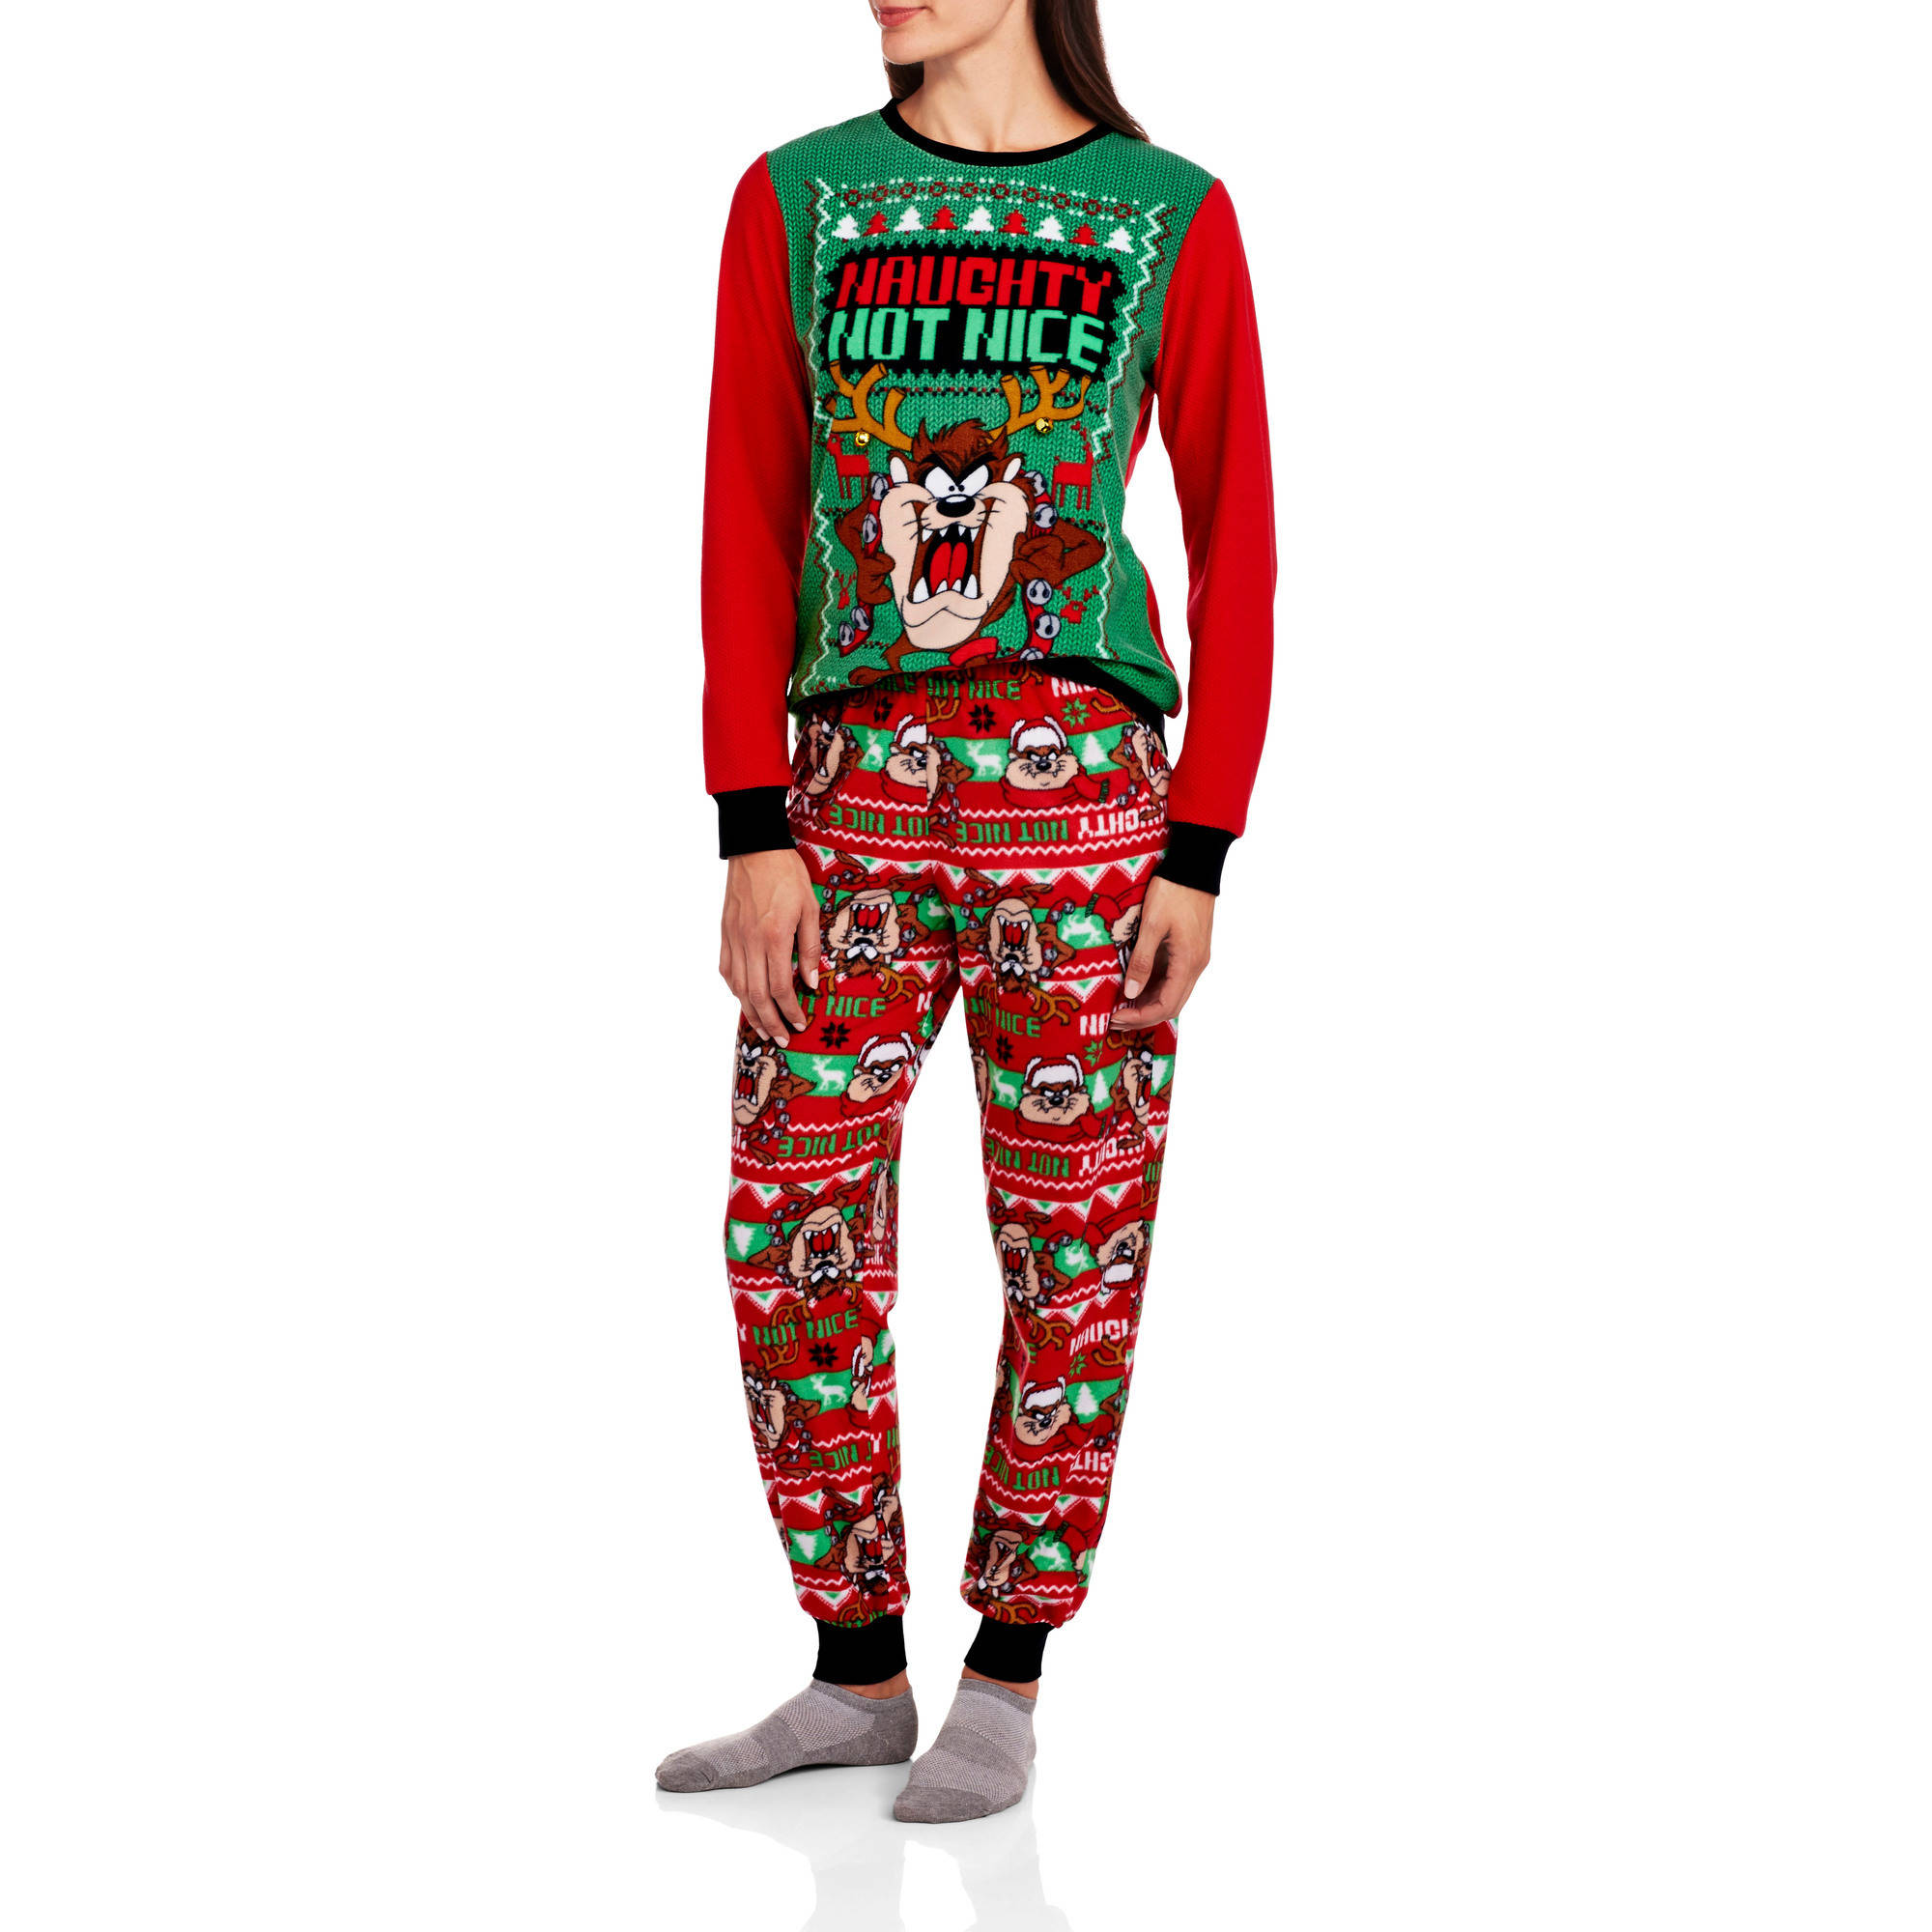 LICENSE - Womens Fleece Taz Ugly Sweater Pajamas Holiday Sleep Set -  Walmart.com 18065fa1b